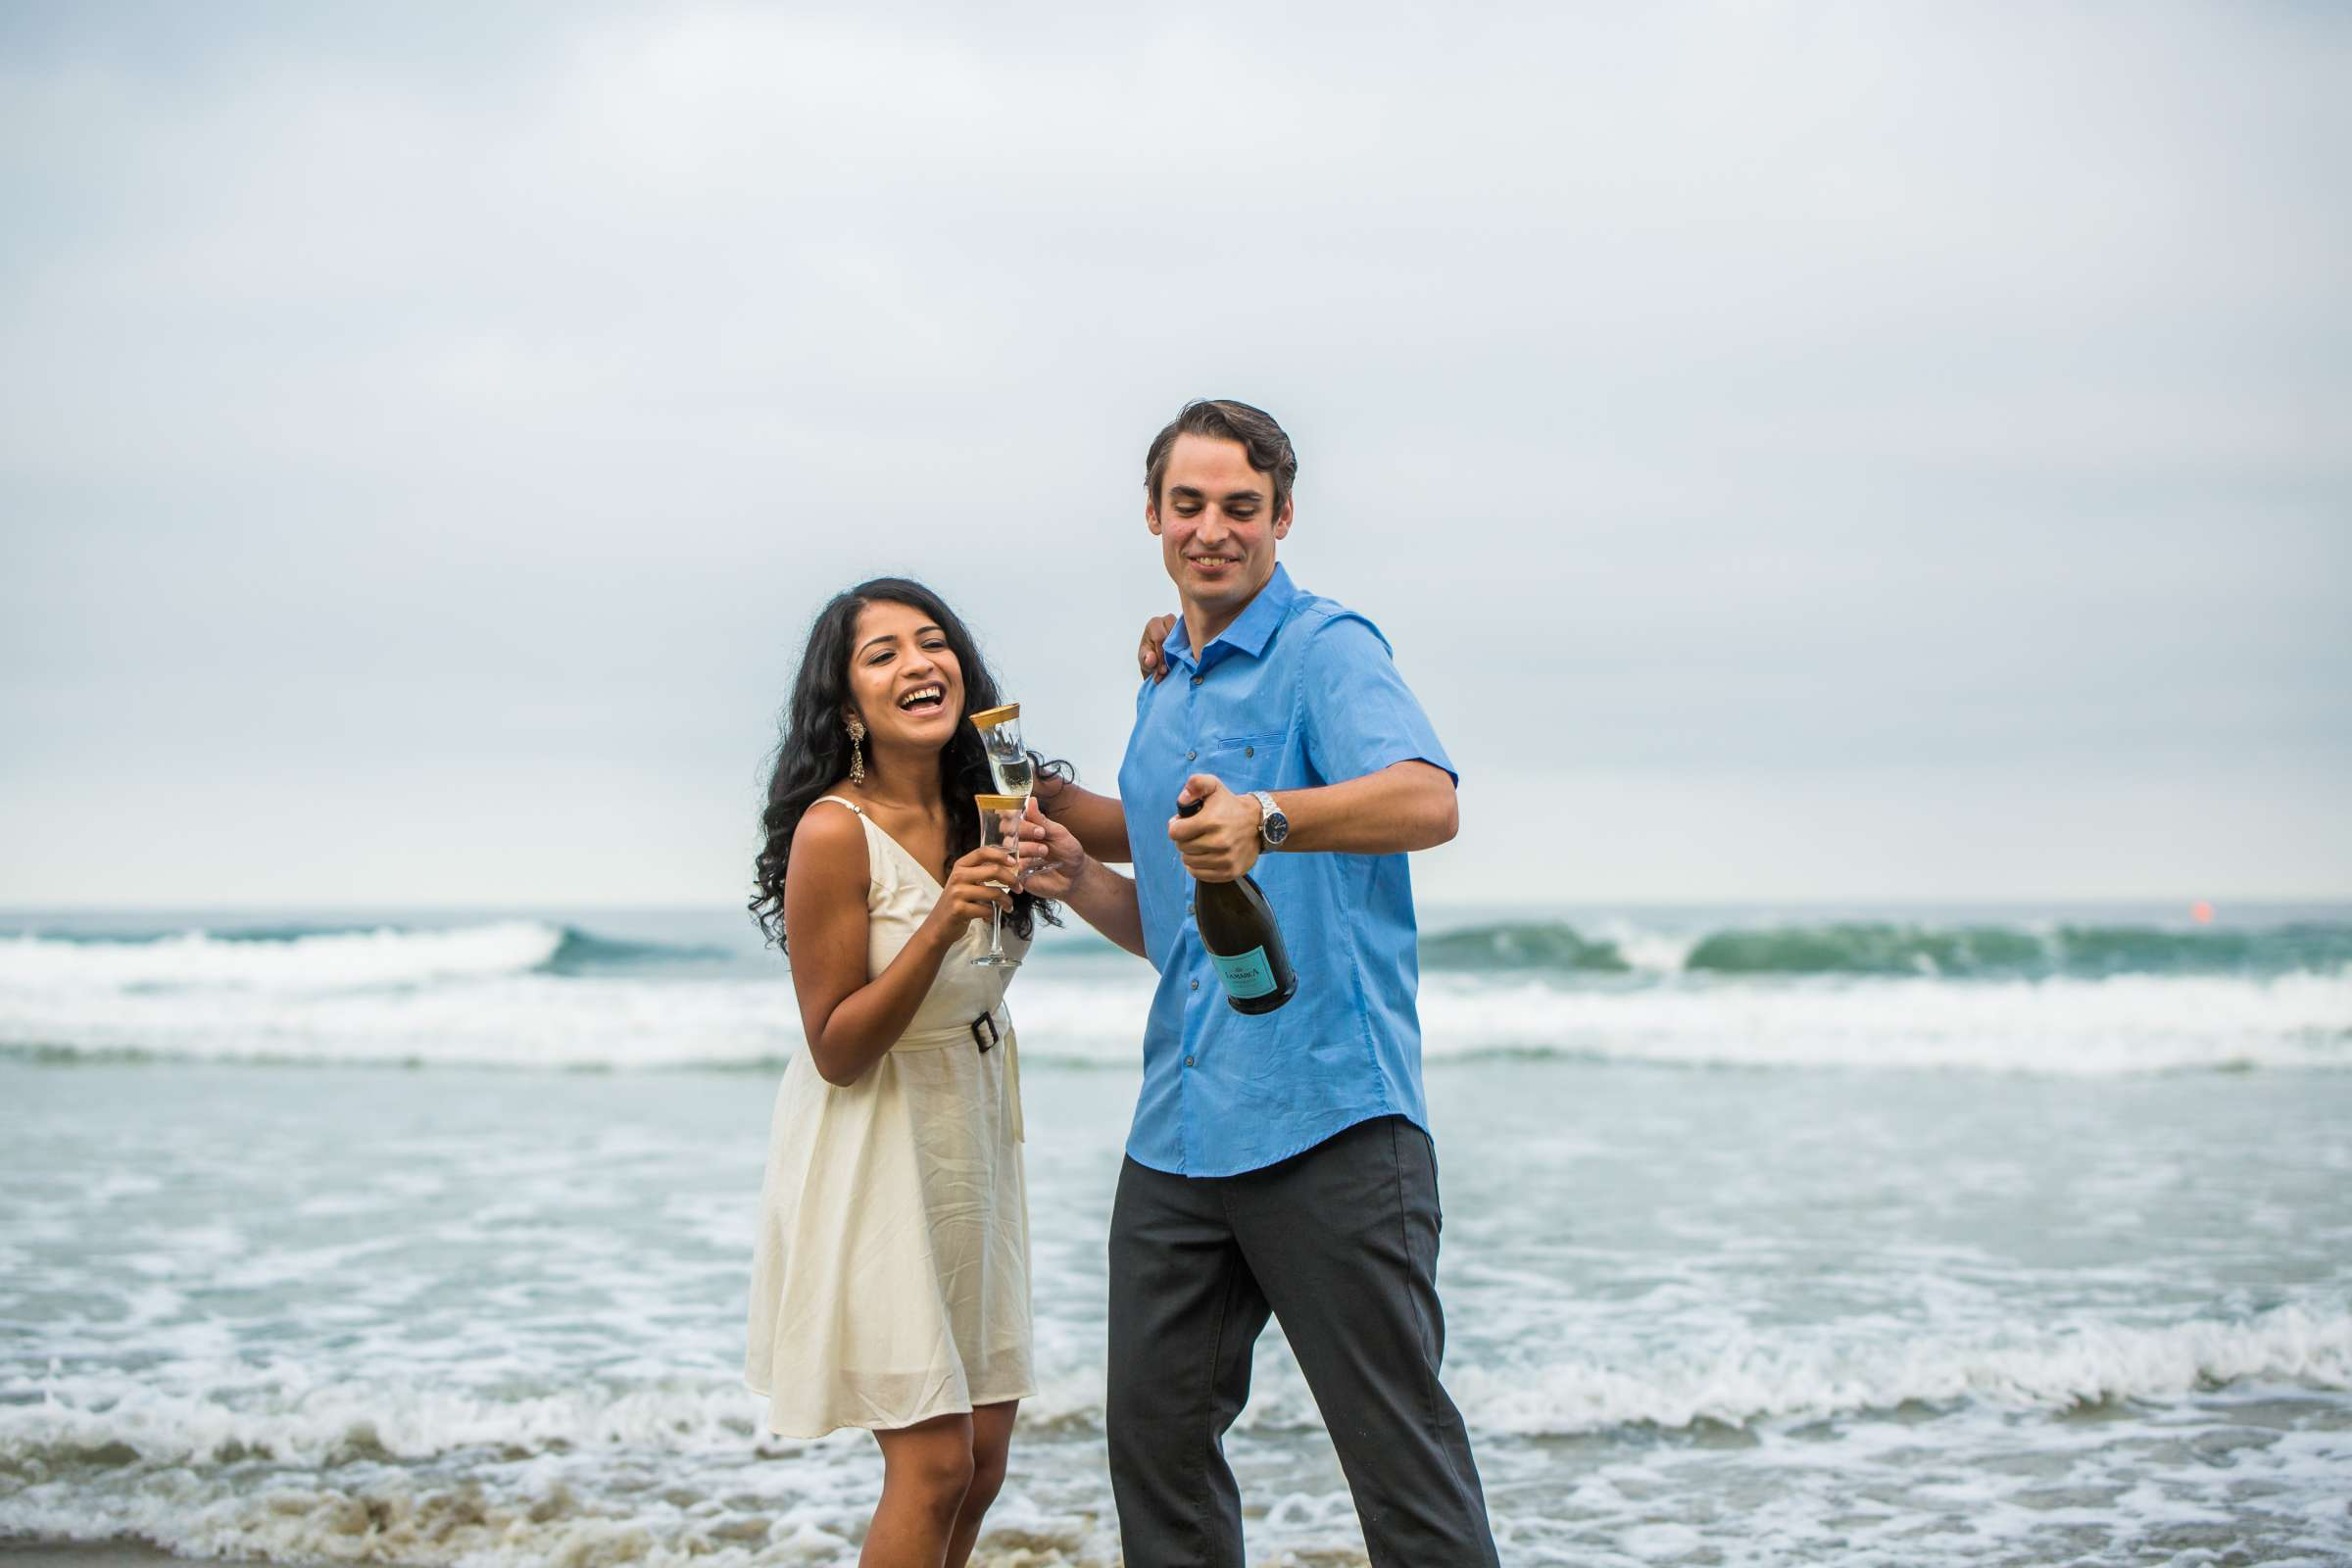 Grand Tradition Estate Engagement, Nikita and Jaycob Engagement Photo #10 by True Photography